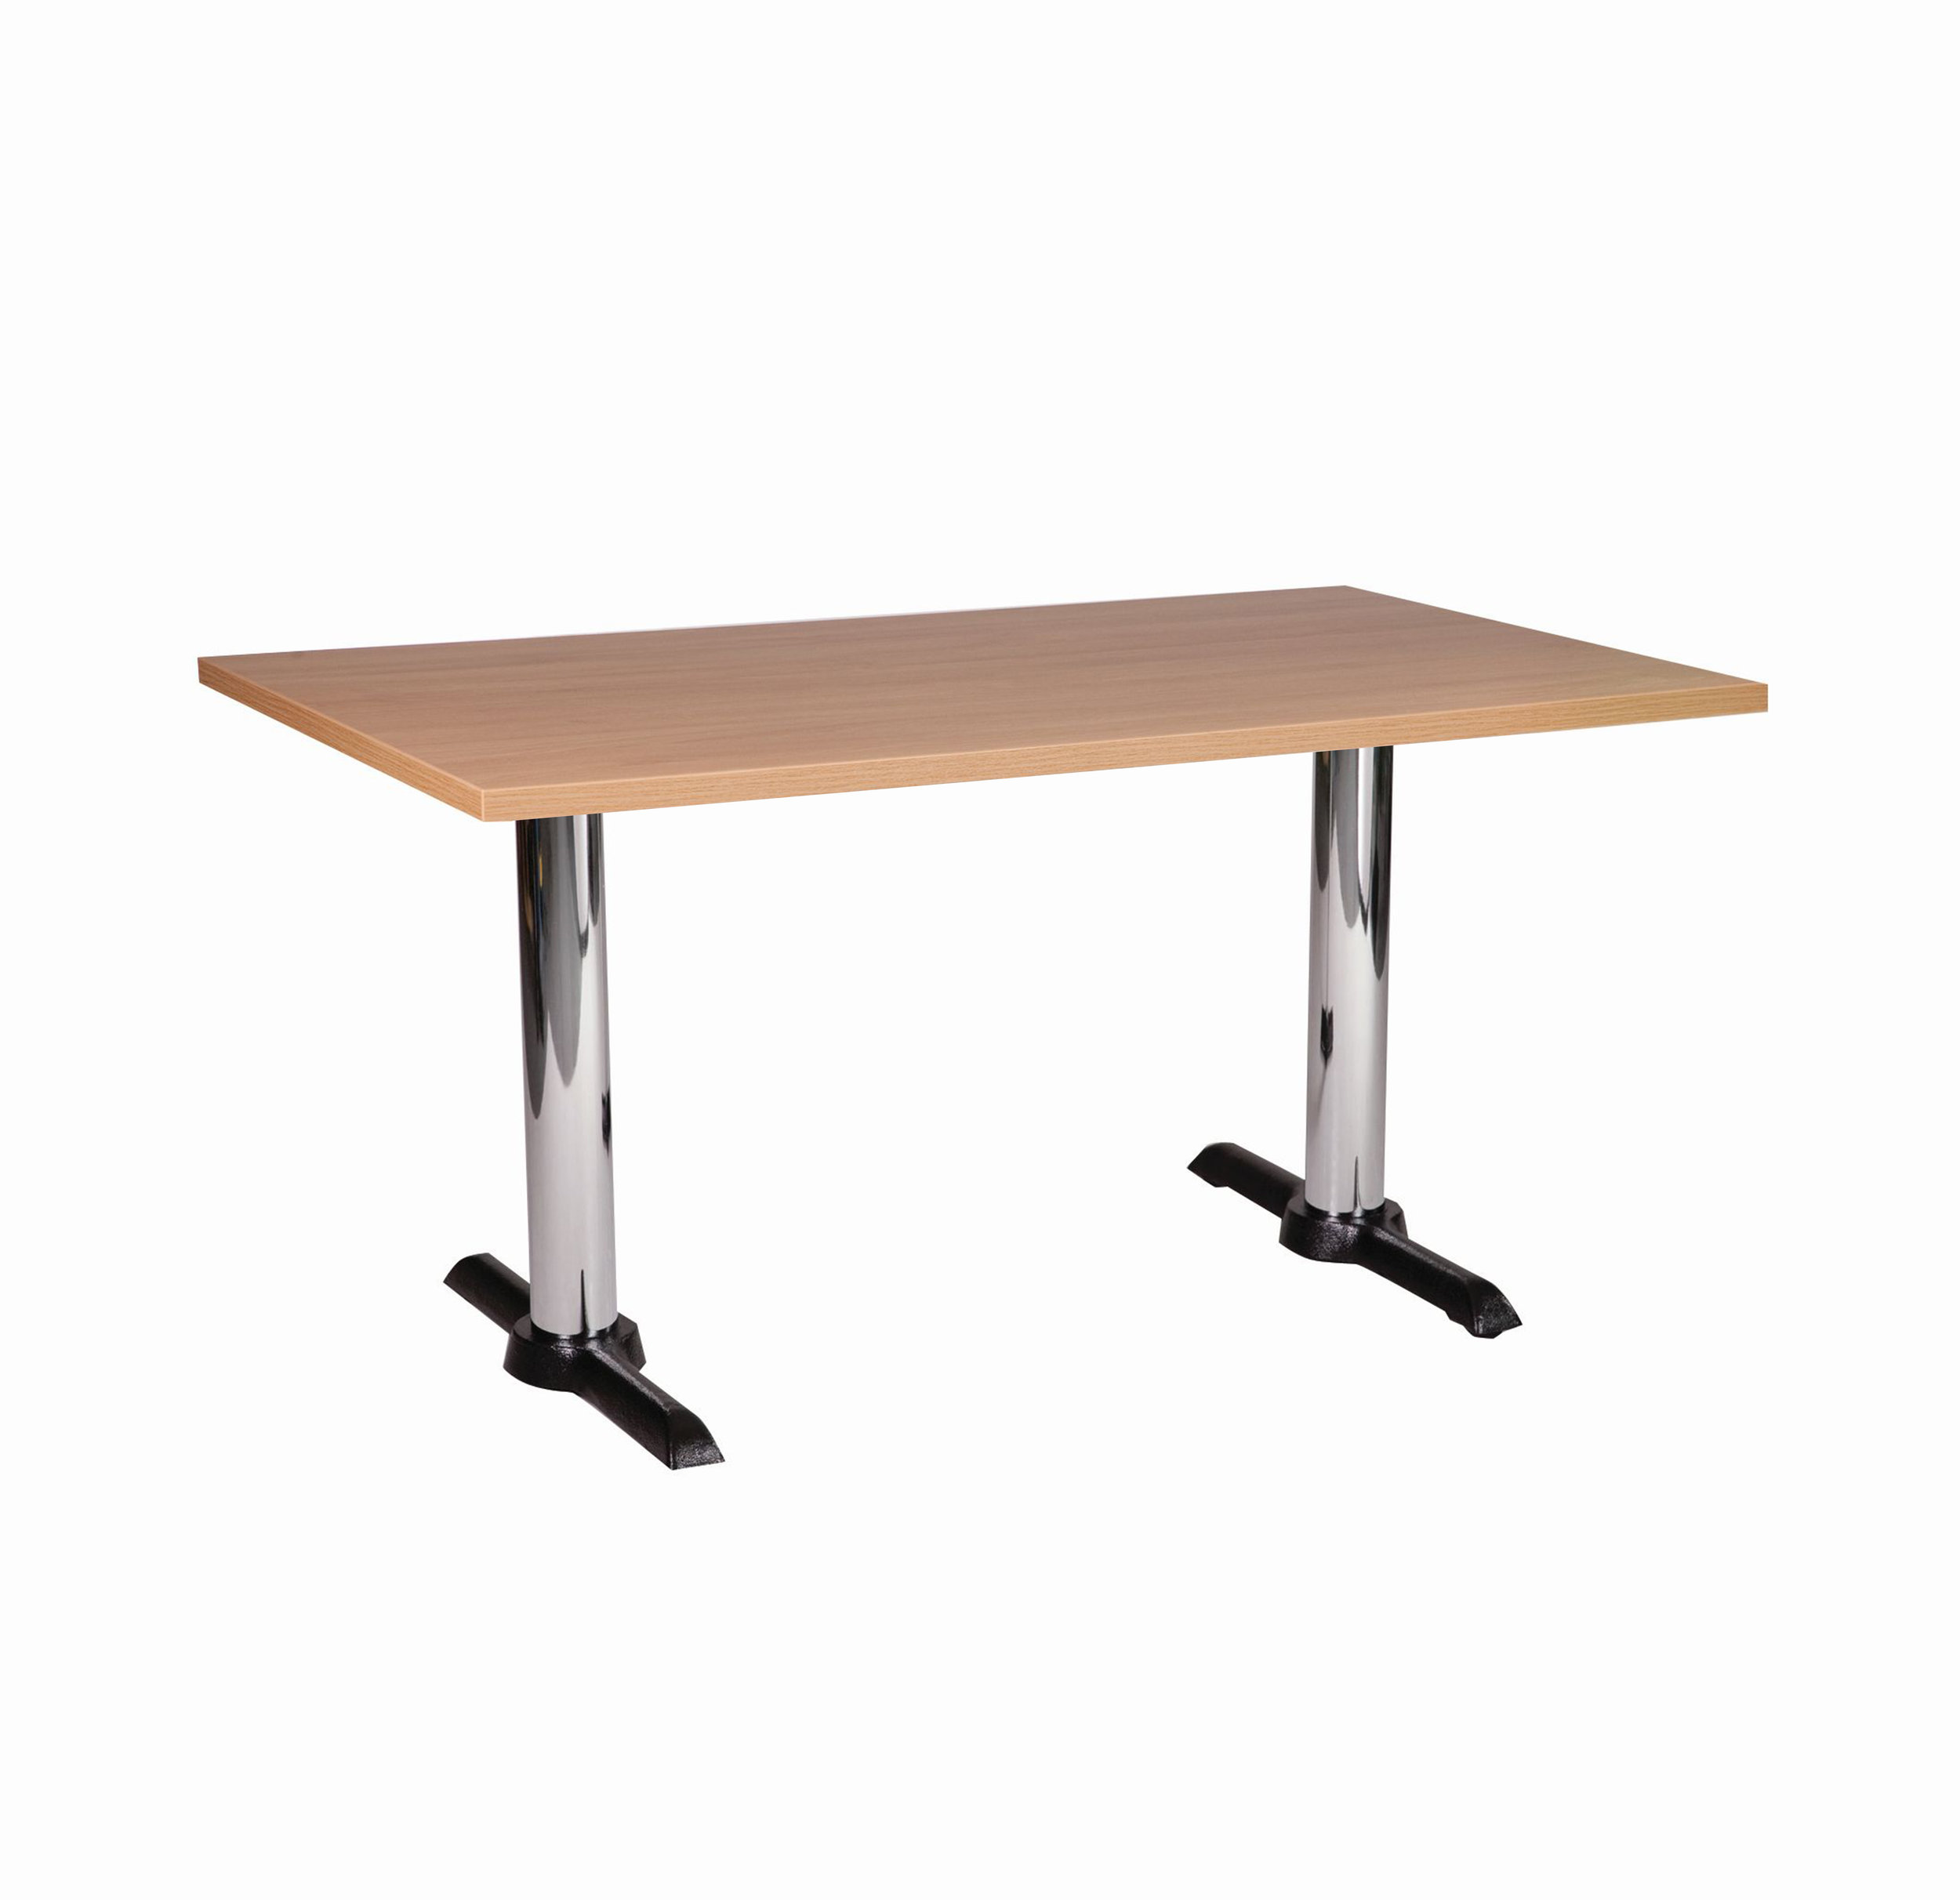 Orlando twin dining height base with oak top (2).jpg